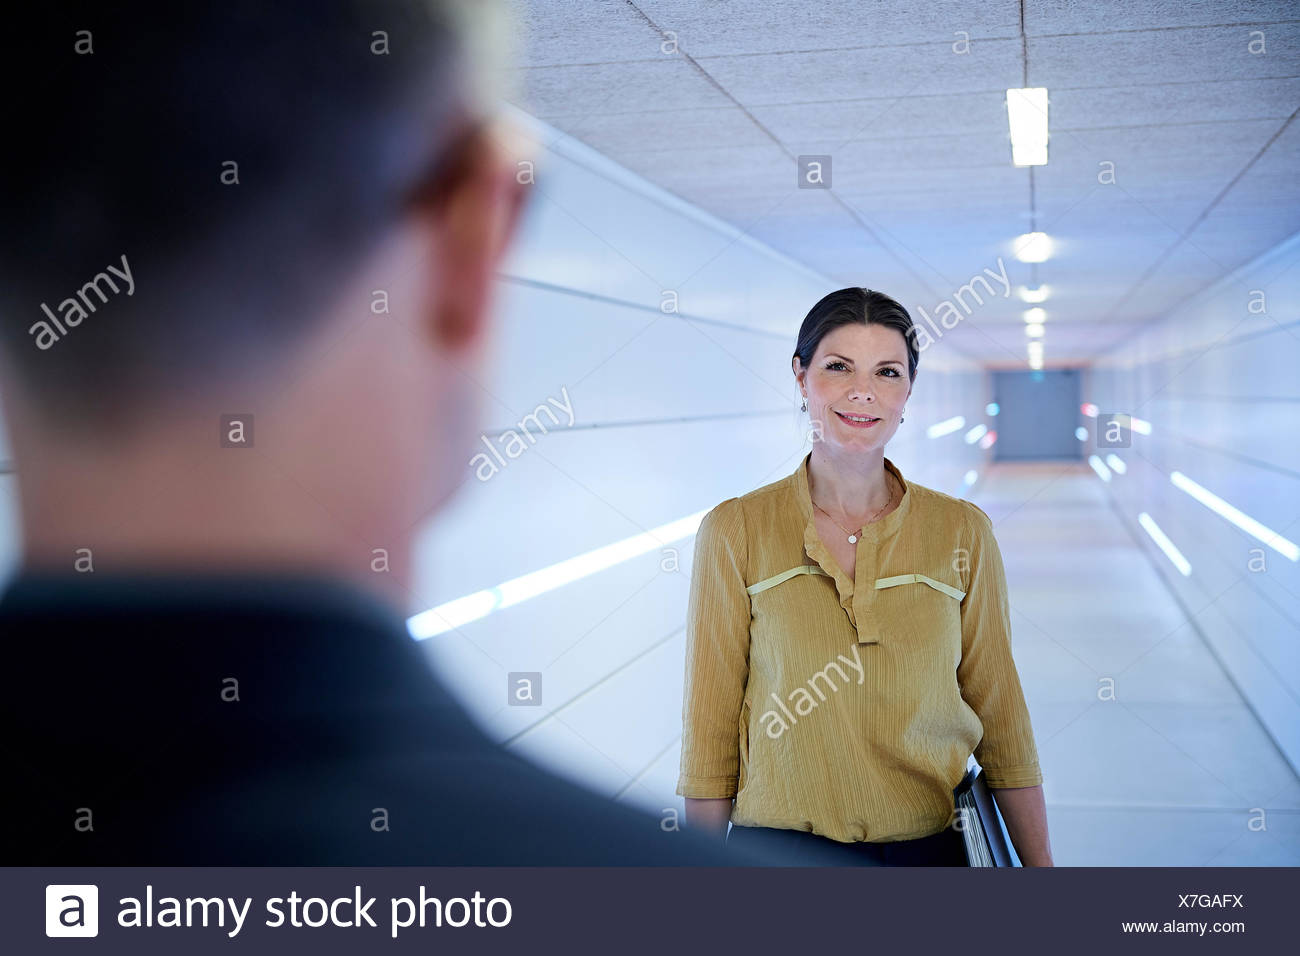 Over shoulder view of businesswoman approaching man in office corridor - Stock Image